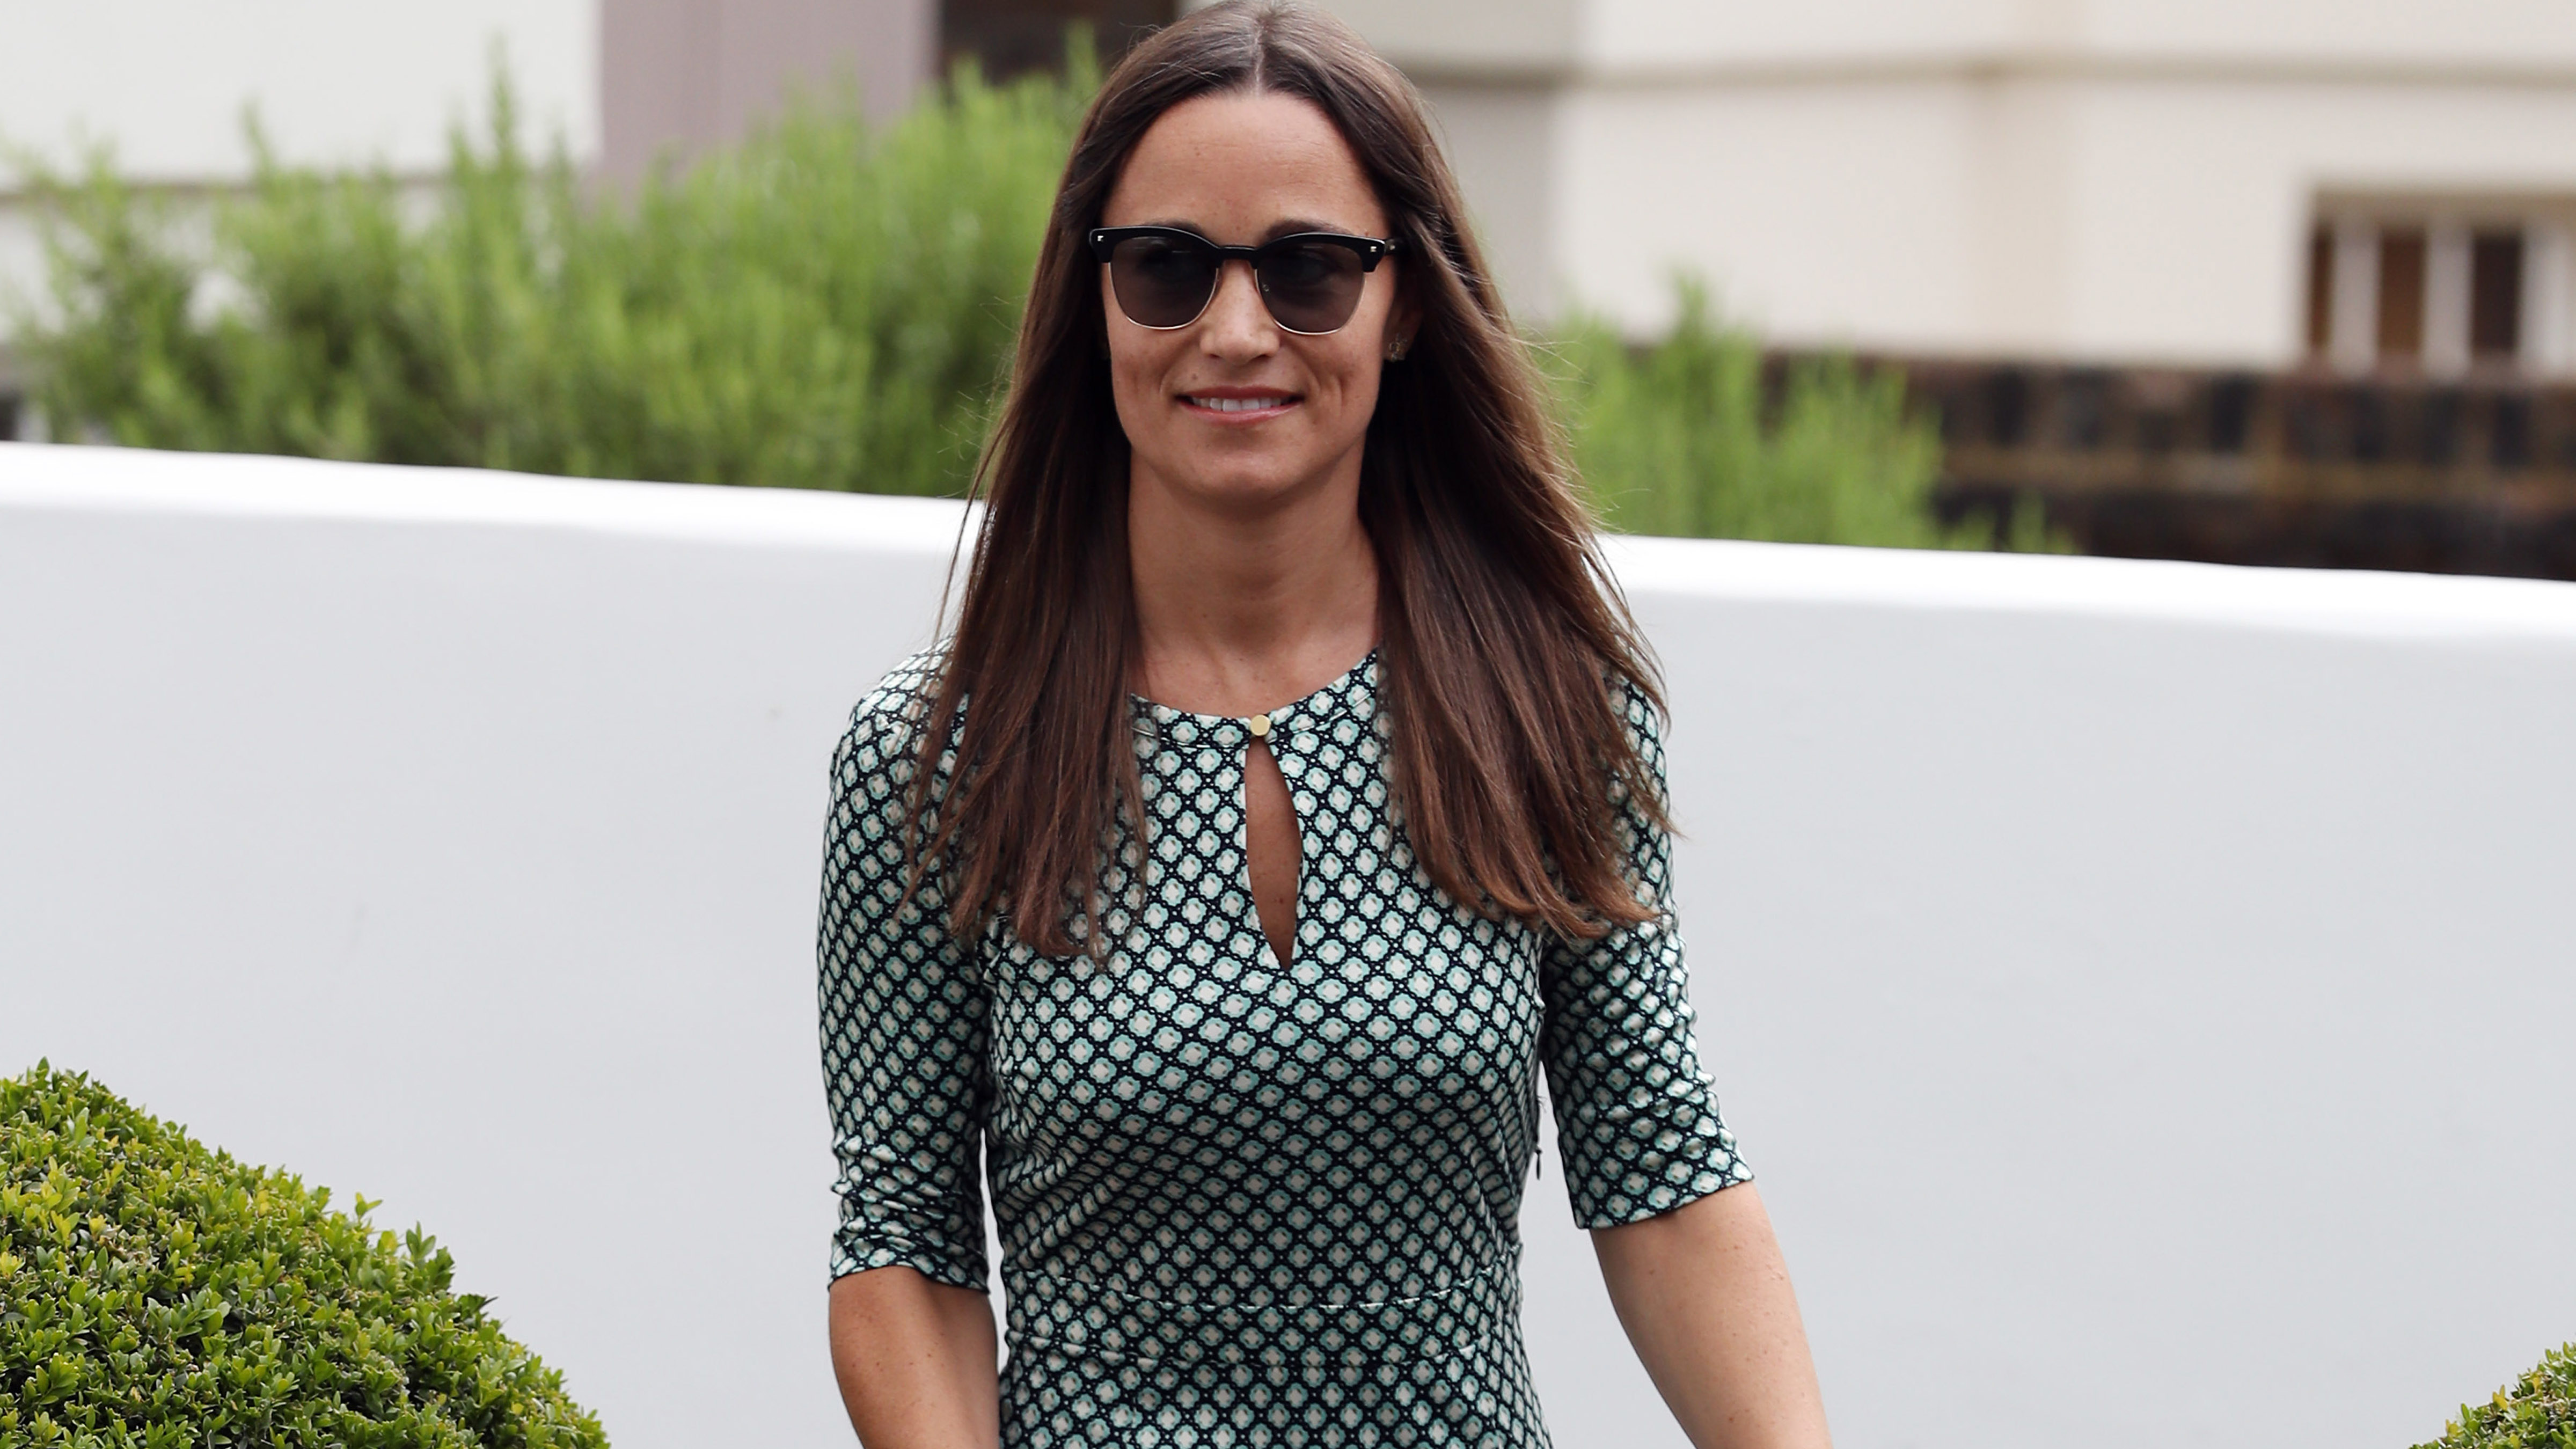 20 of Pippa Middleton's Most Stunning Looks